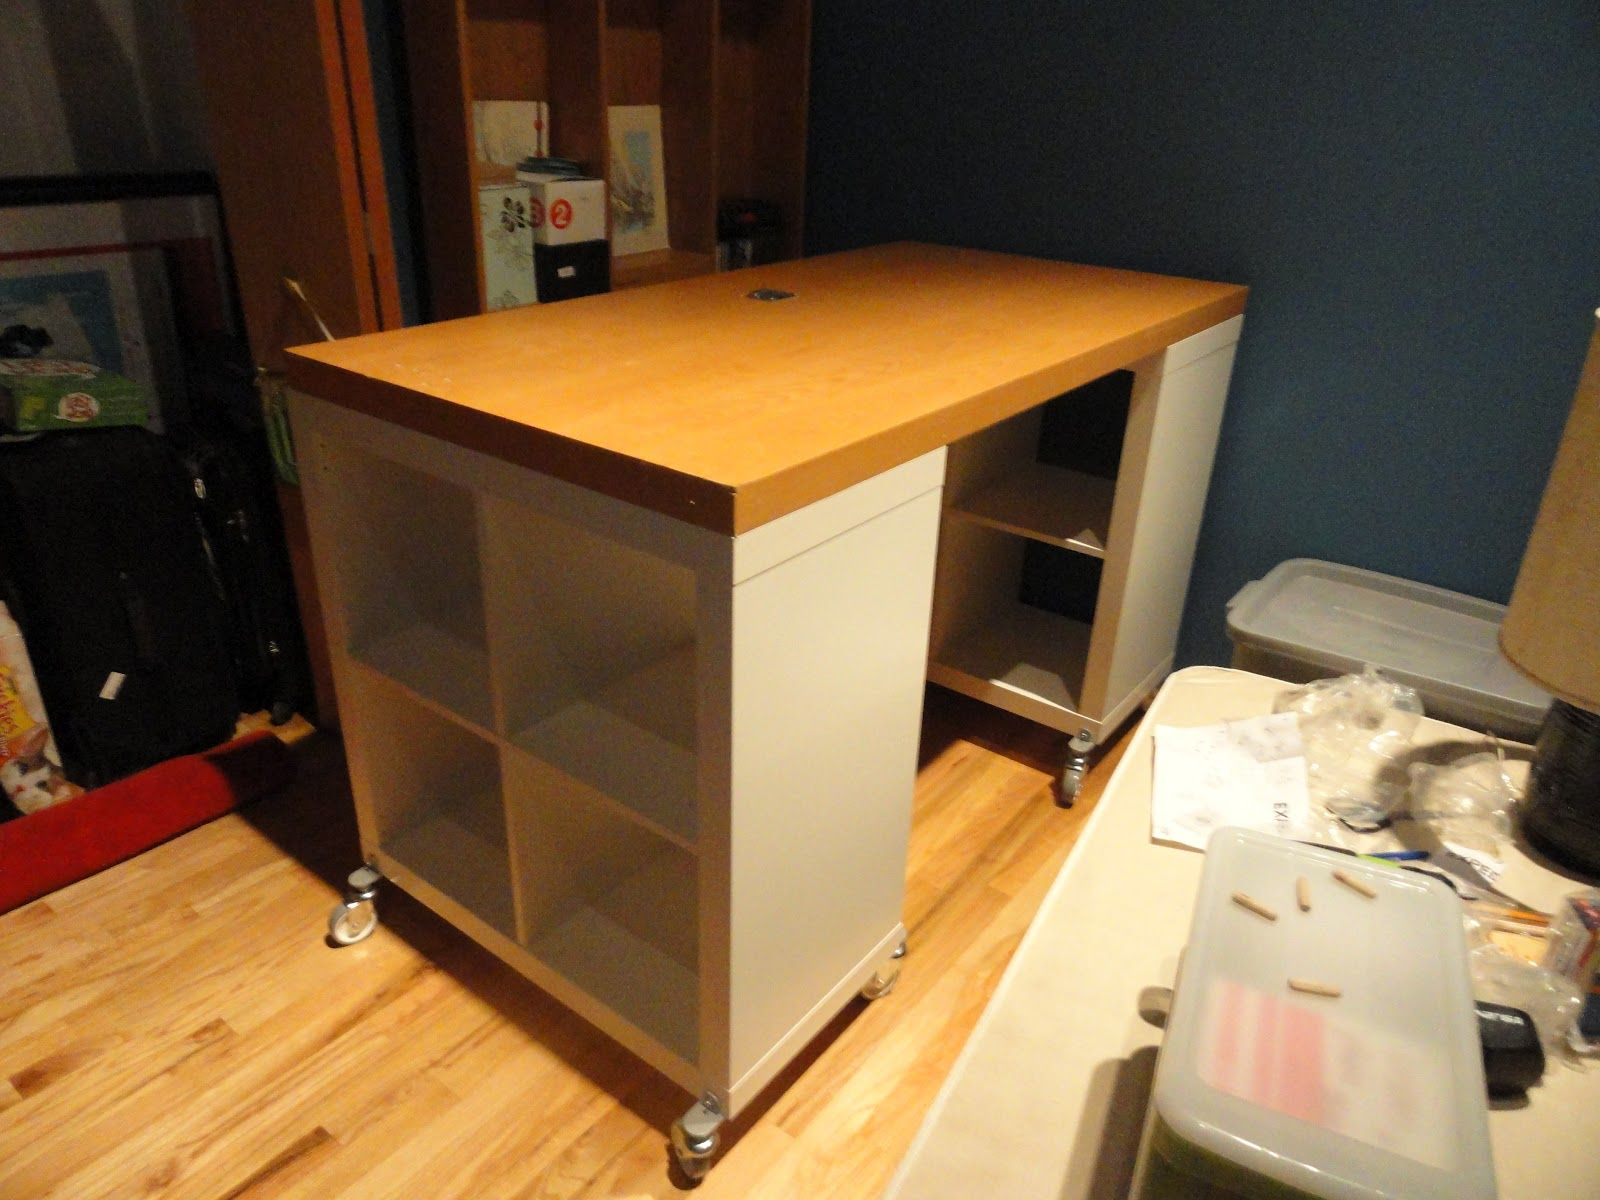 31+ Counter height craft table ikea ideas in 2021